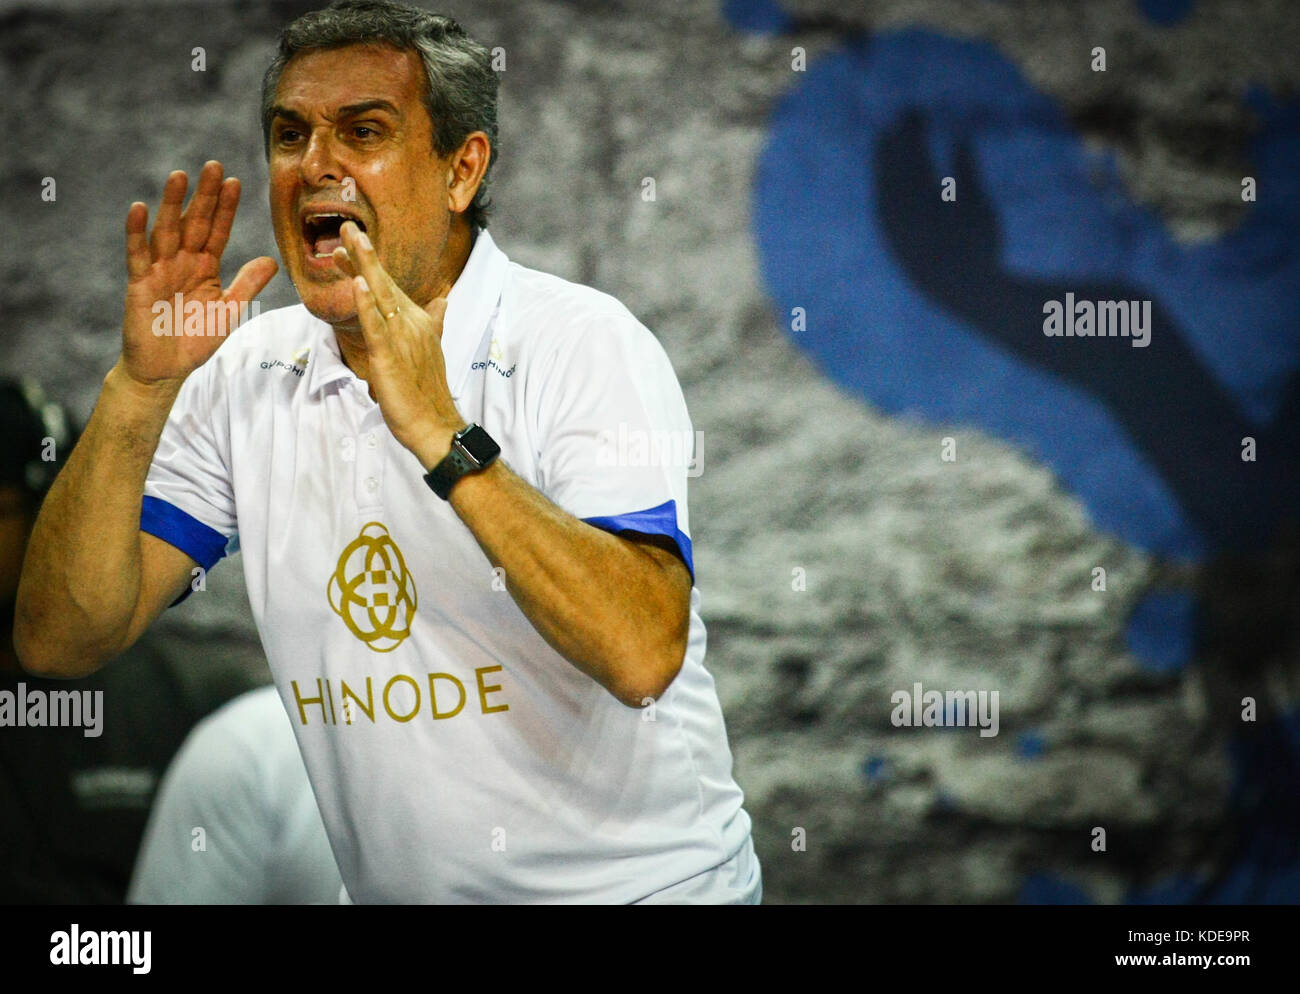 Osasco Brazil. 13th Oct 2017. In the photo the coach of Hinode Stock Photo Royalty Free Image